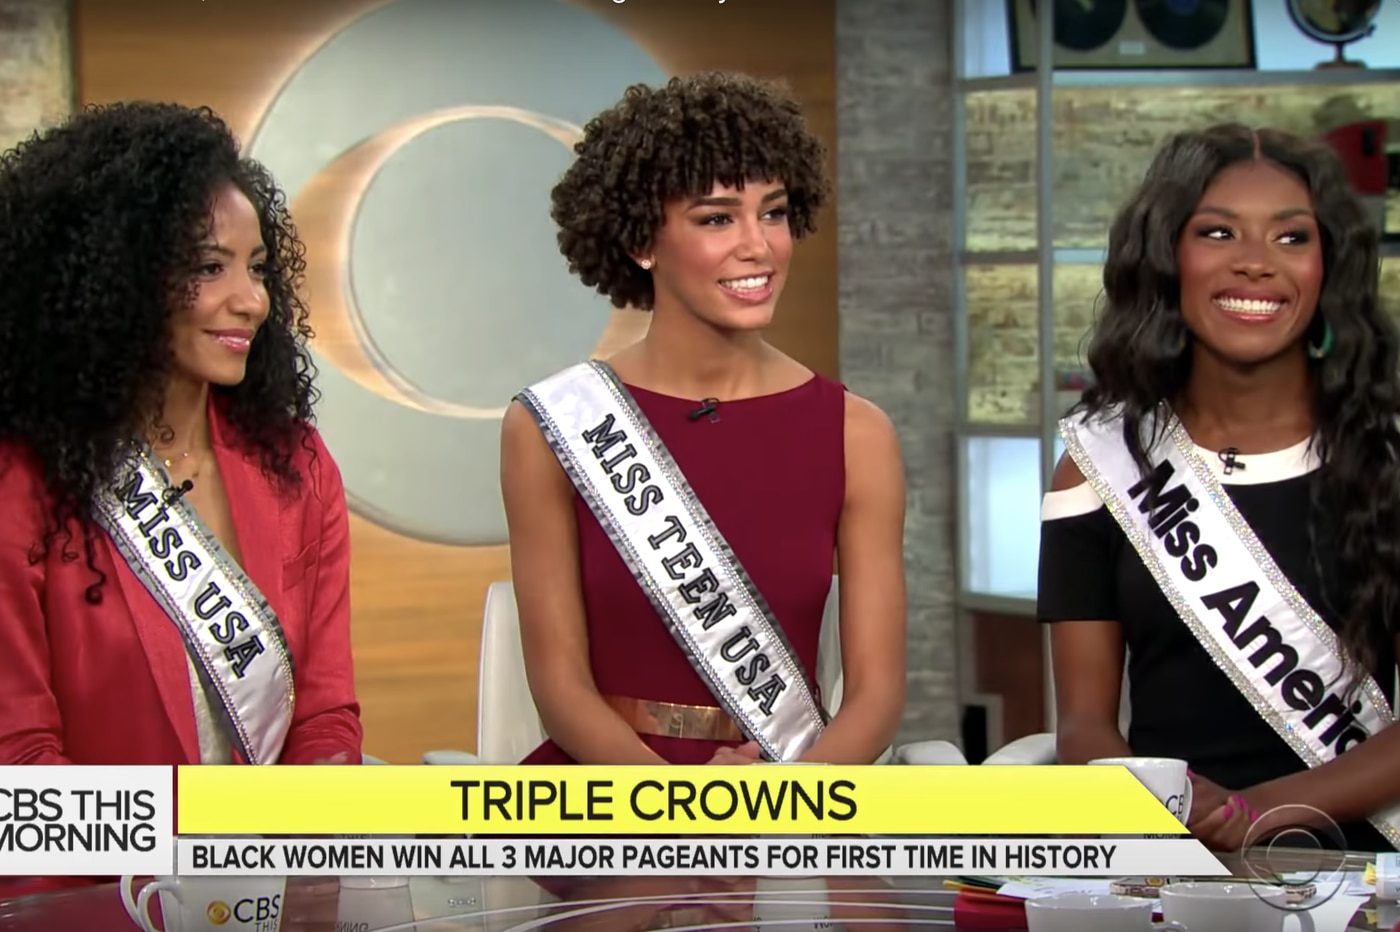 America's beauty queens are all black. So why do we still need natural hair laws? | Elizabeth Wellington